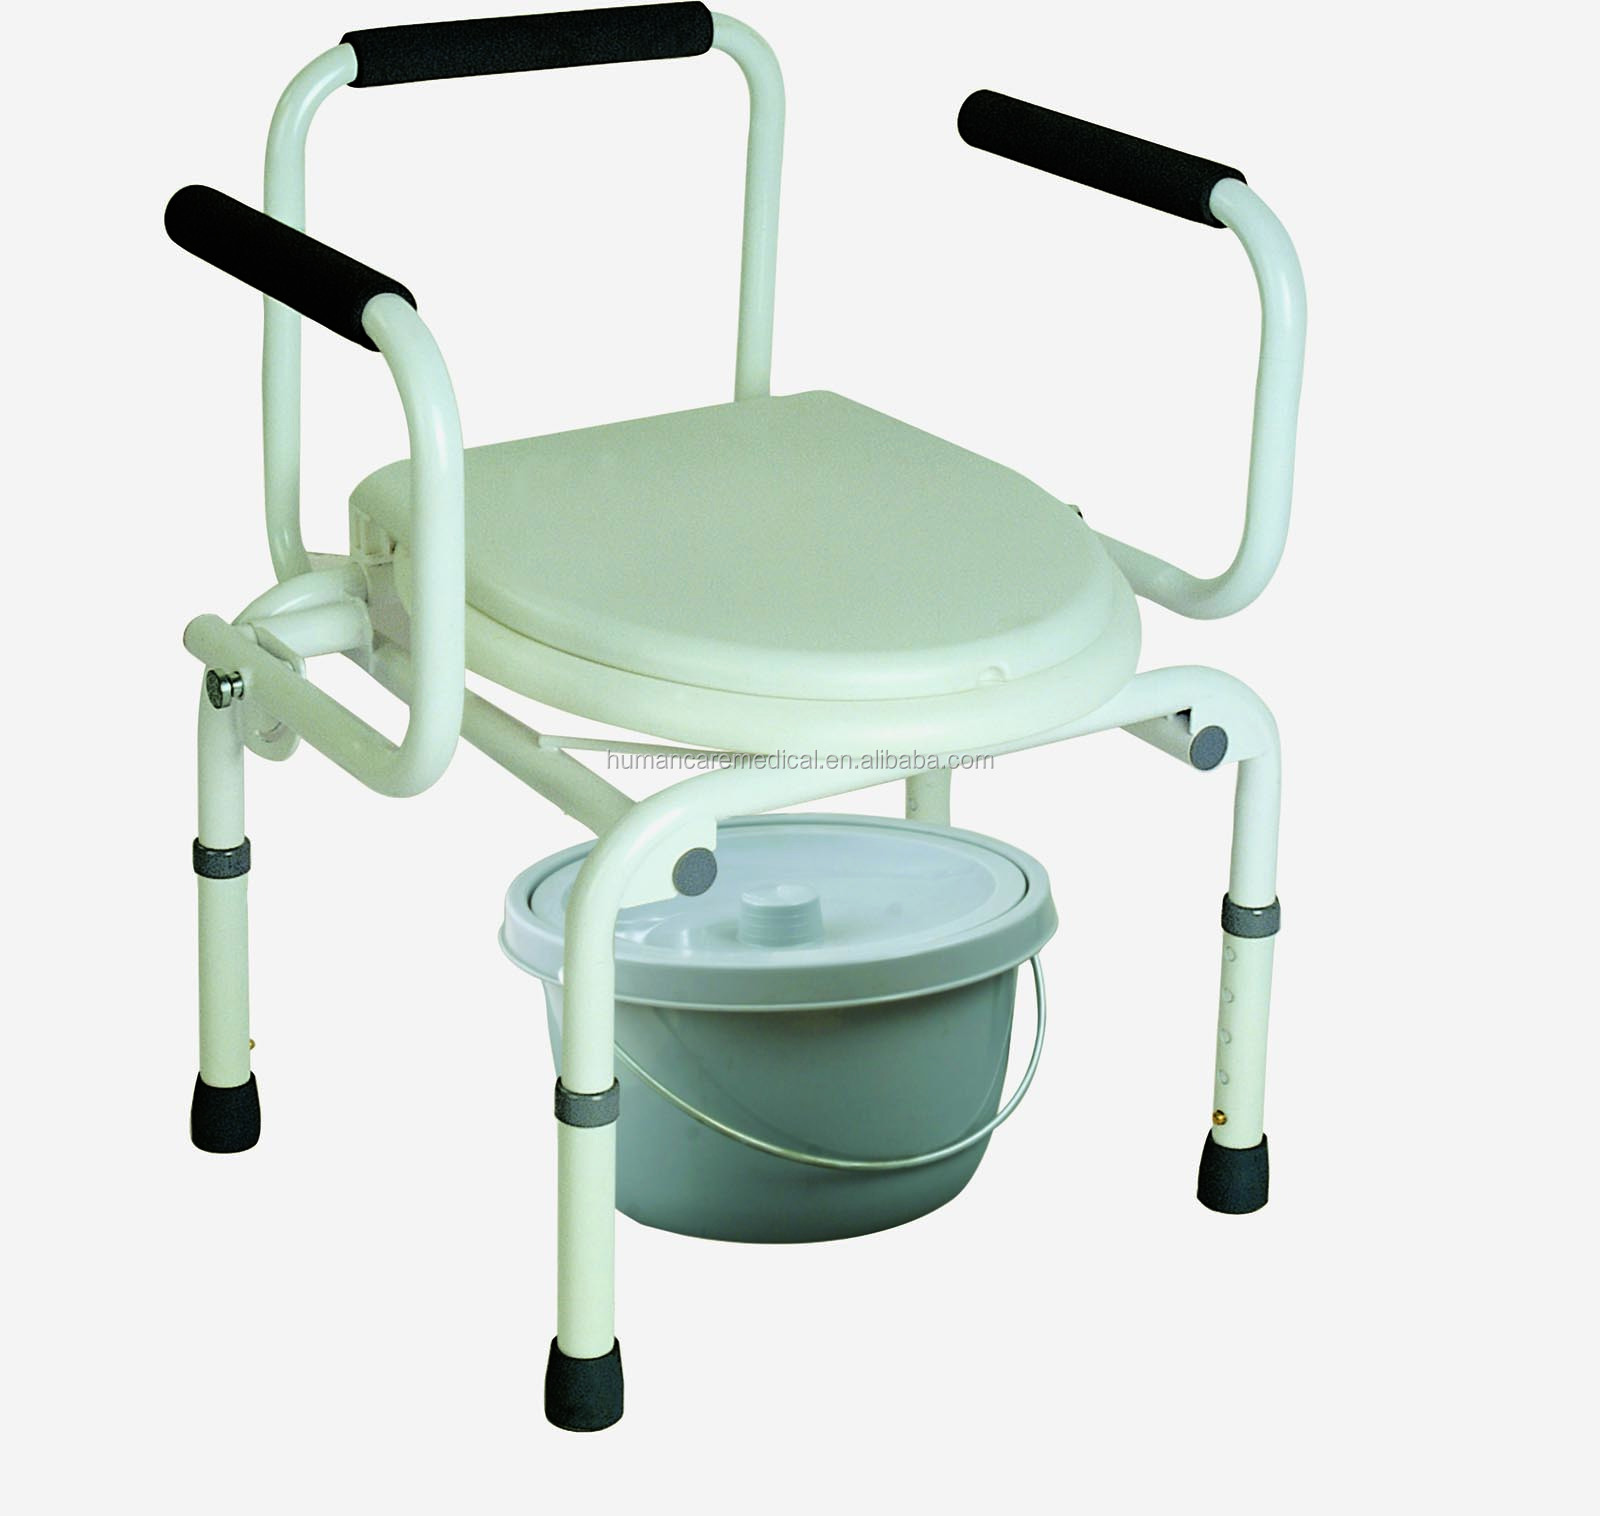 Folding Commode Chair Economy Folding Commode Chair With Caster Mobile Commode